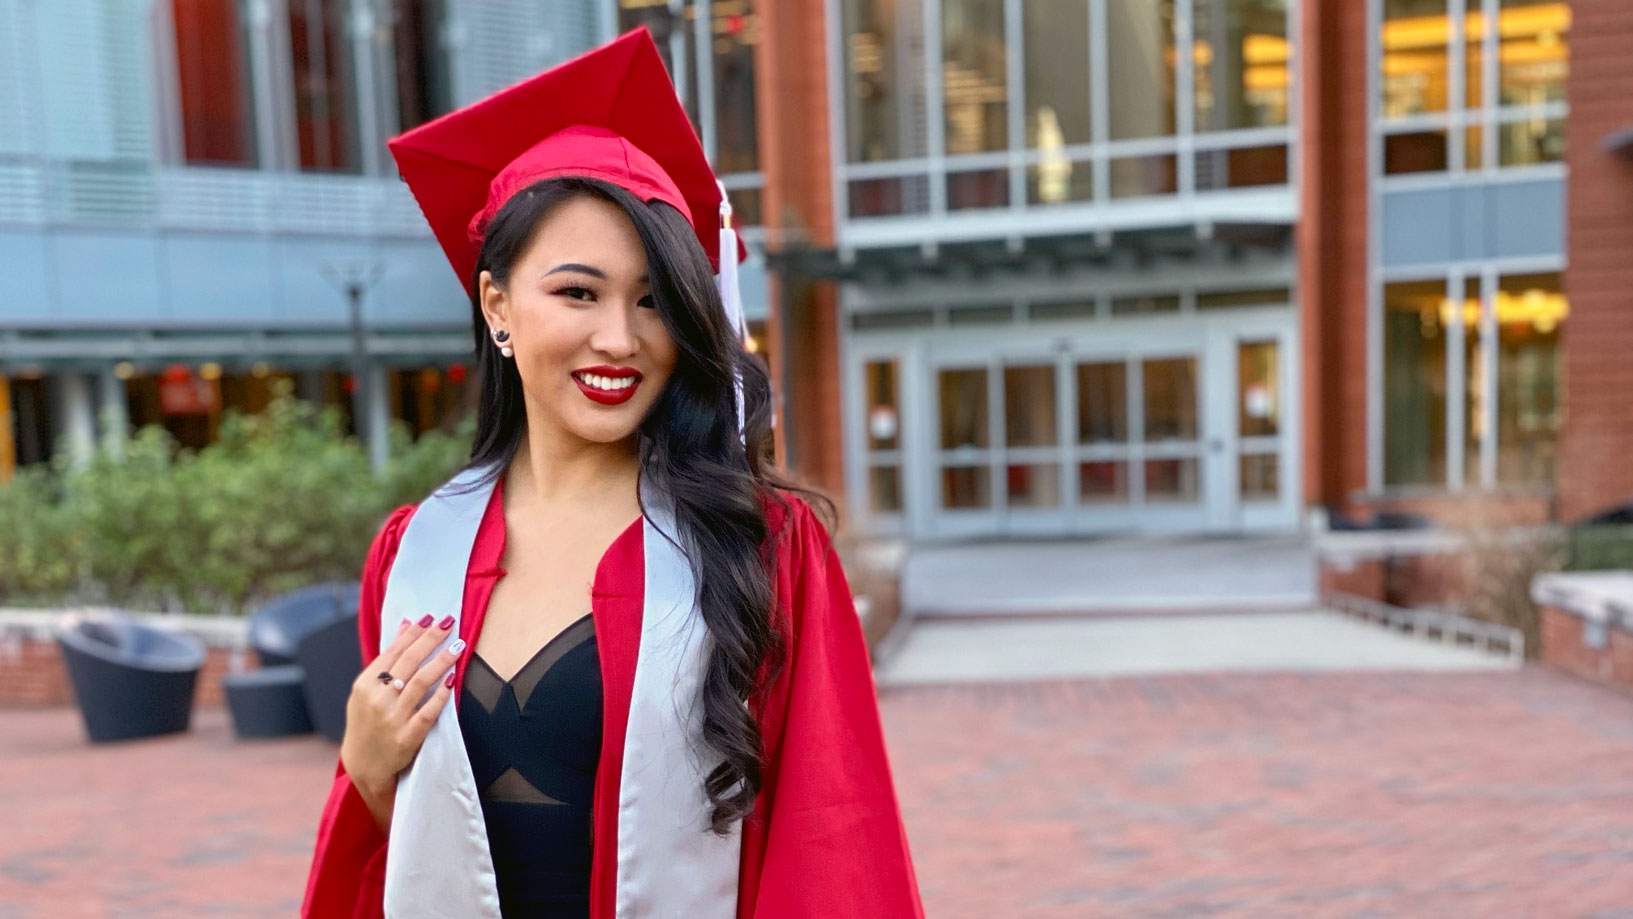 Asian woman in red graduation cap and gown